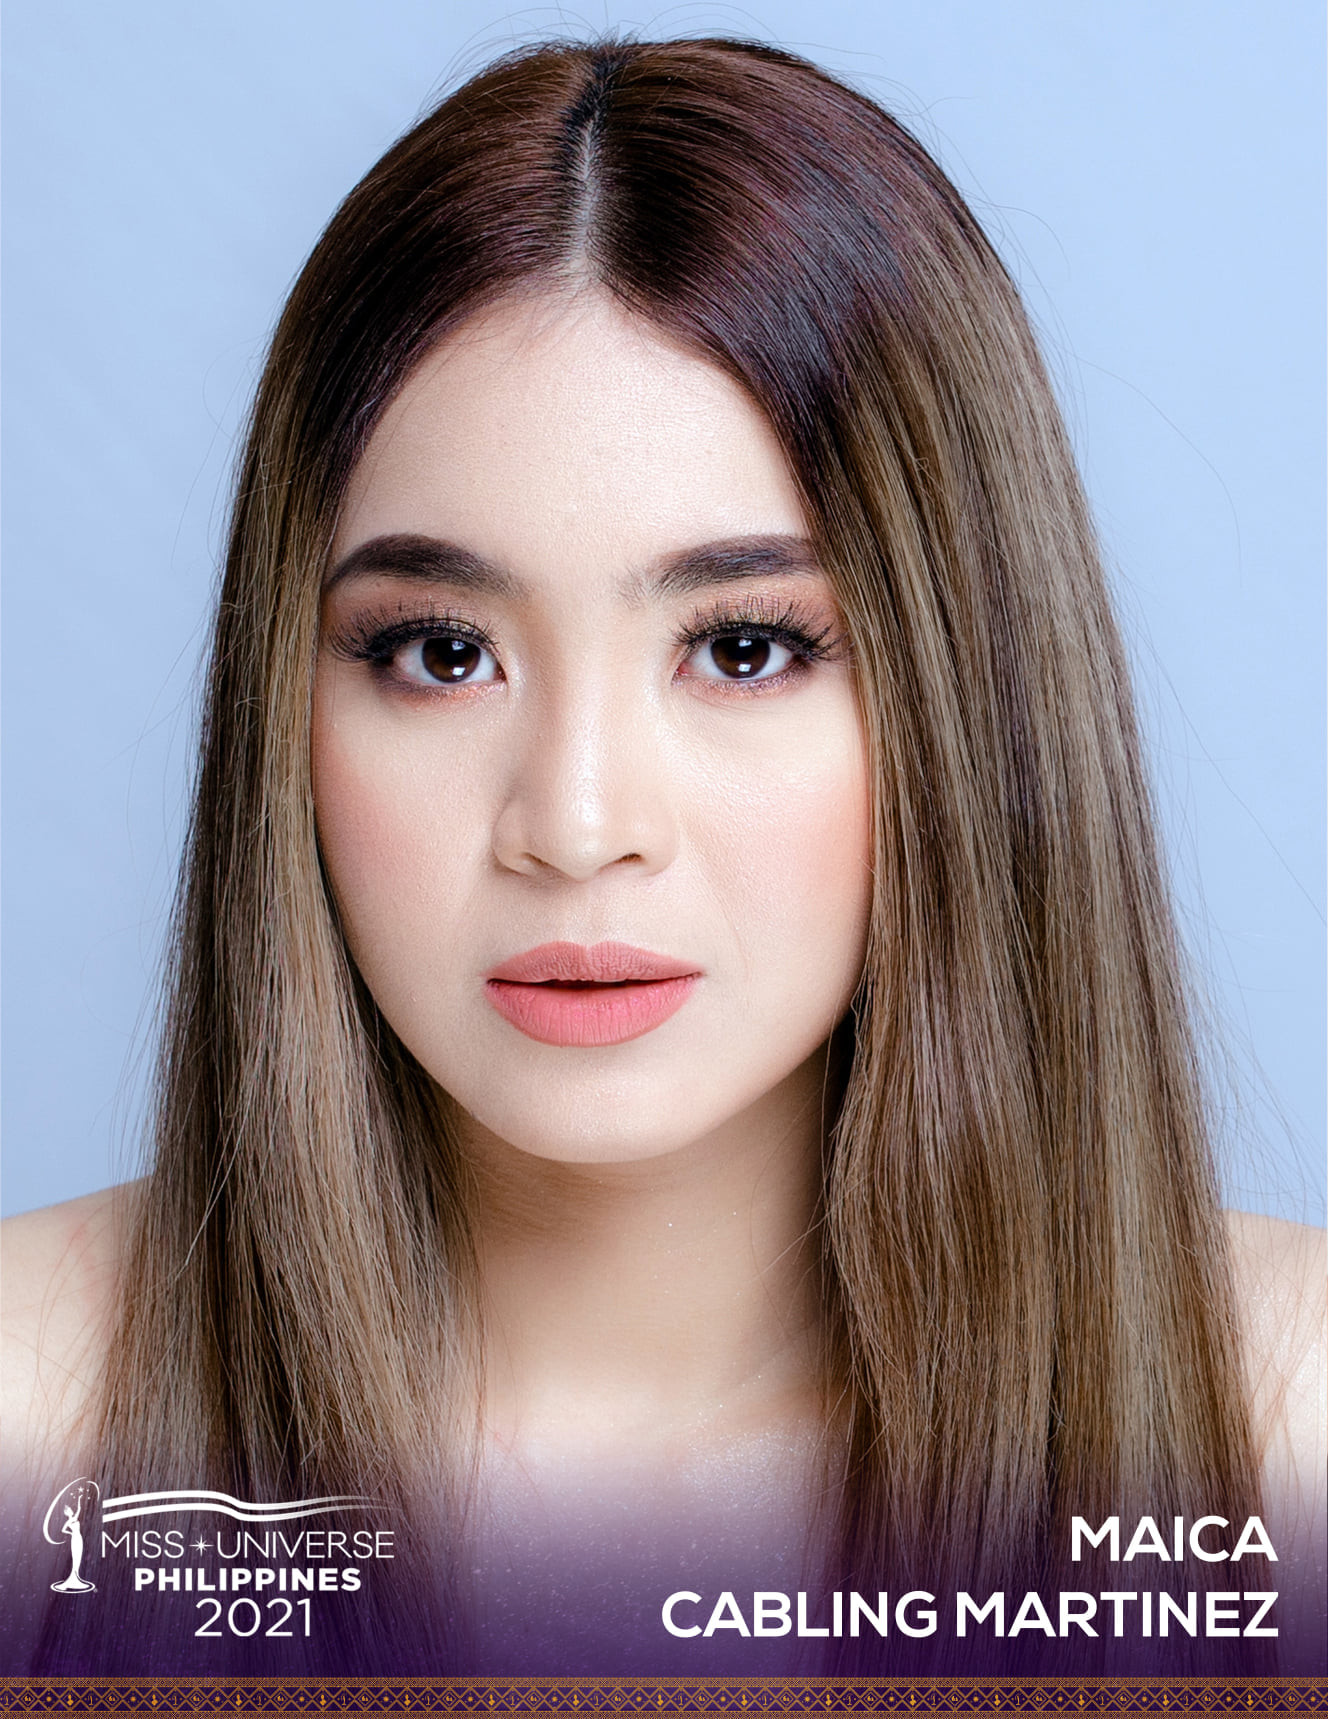 pre-candidatas a miss universe philippines 2021. AlFyVR